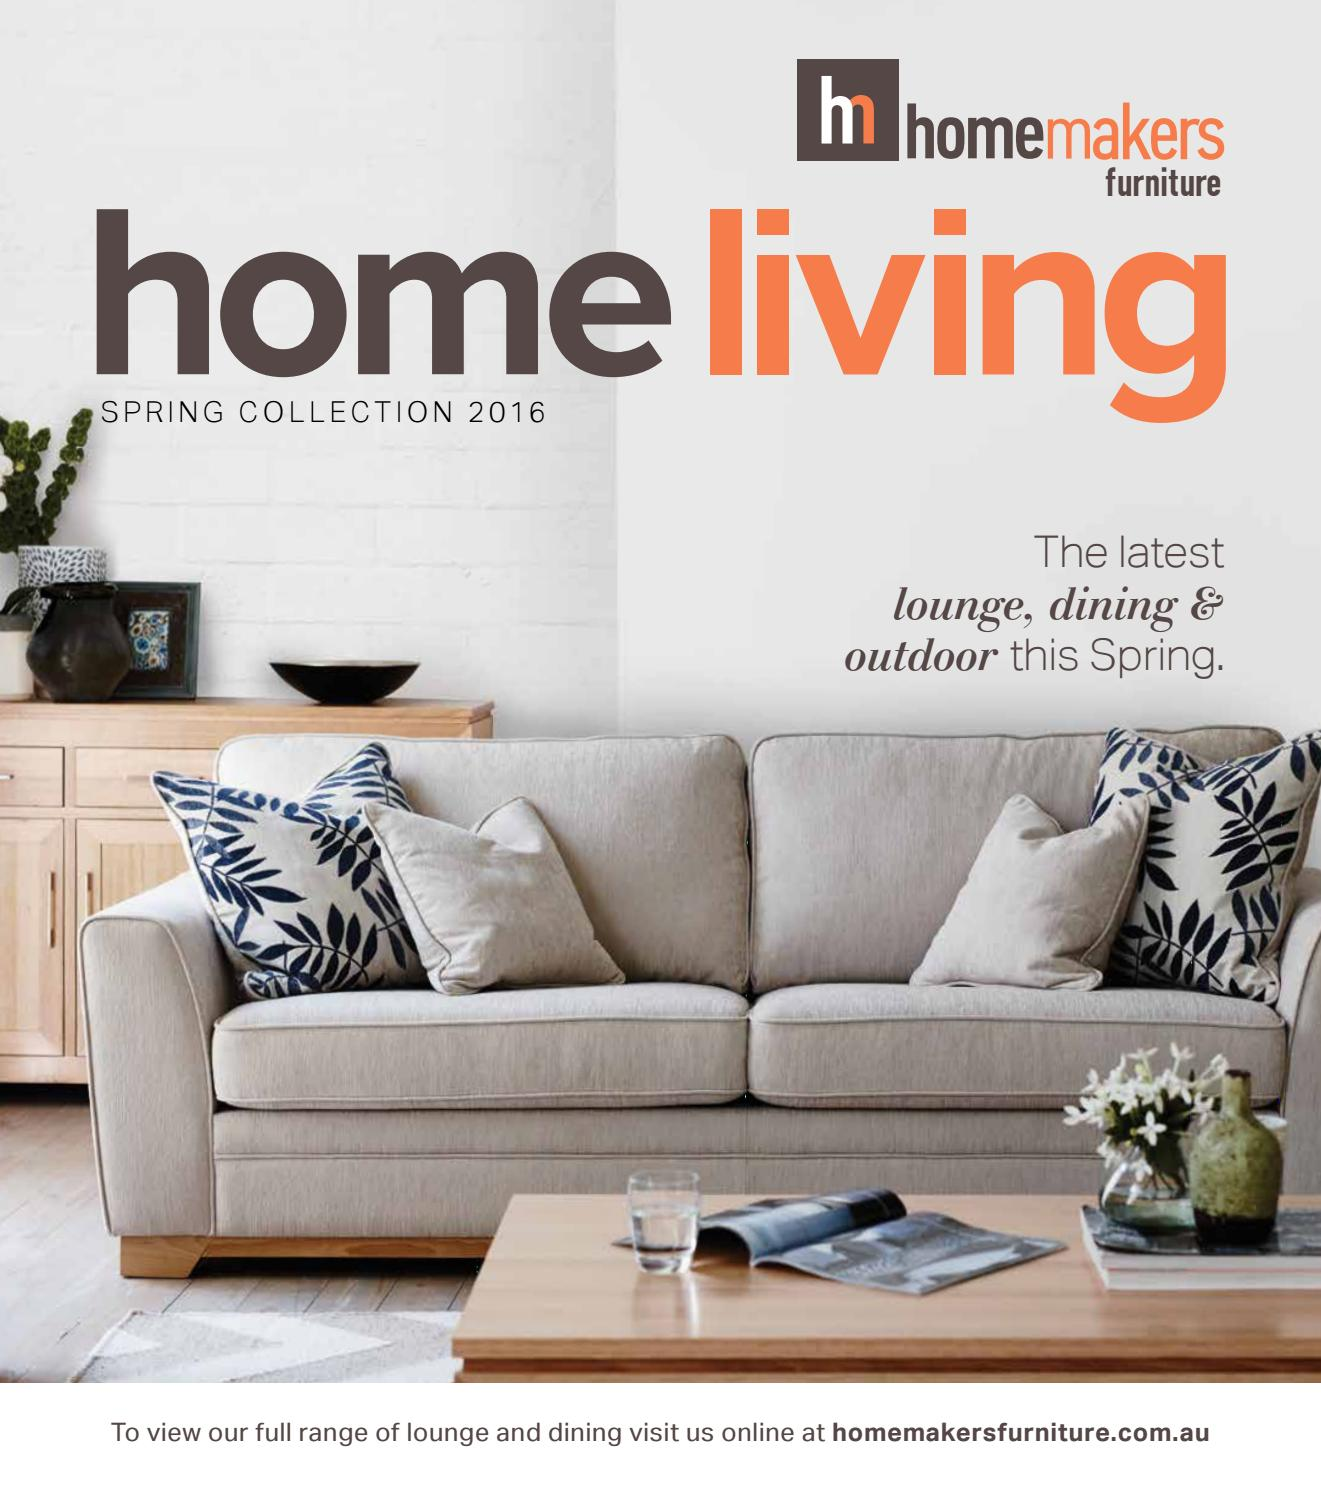 Homemakers Spring Home Living Catalogue 2016 By Homemakers Furniture Issuu